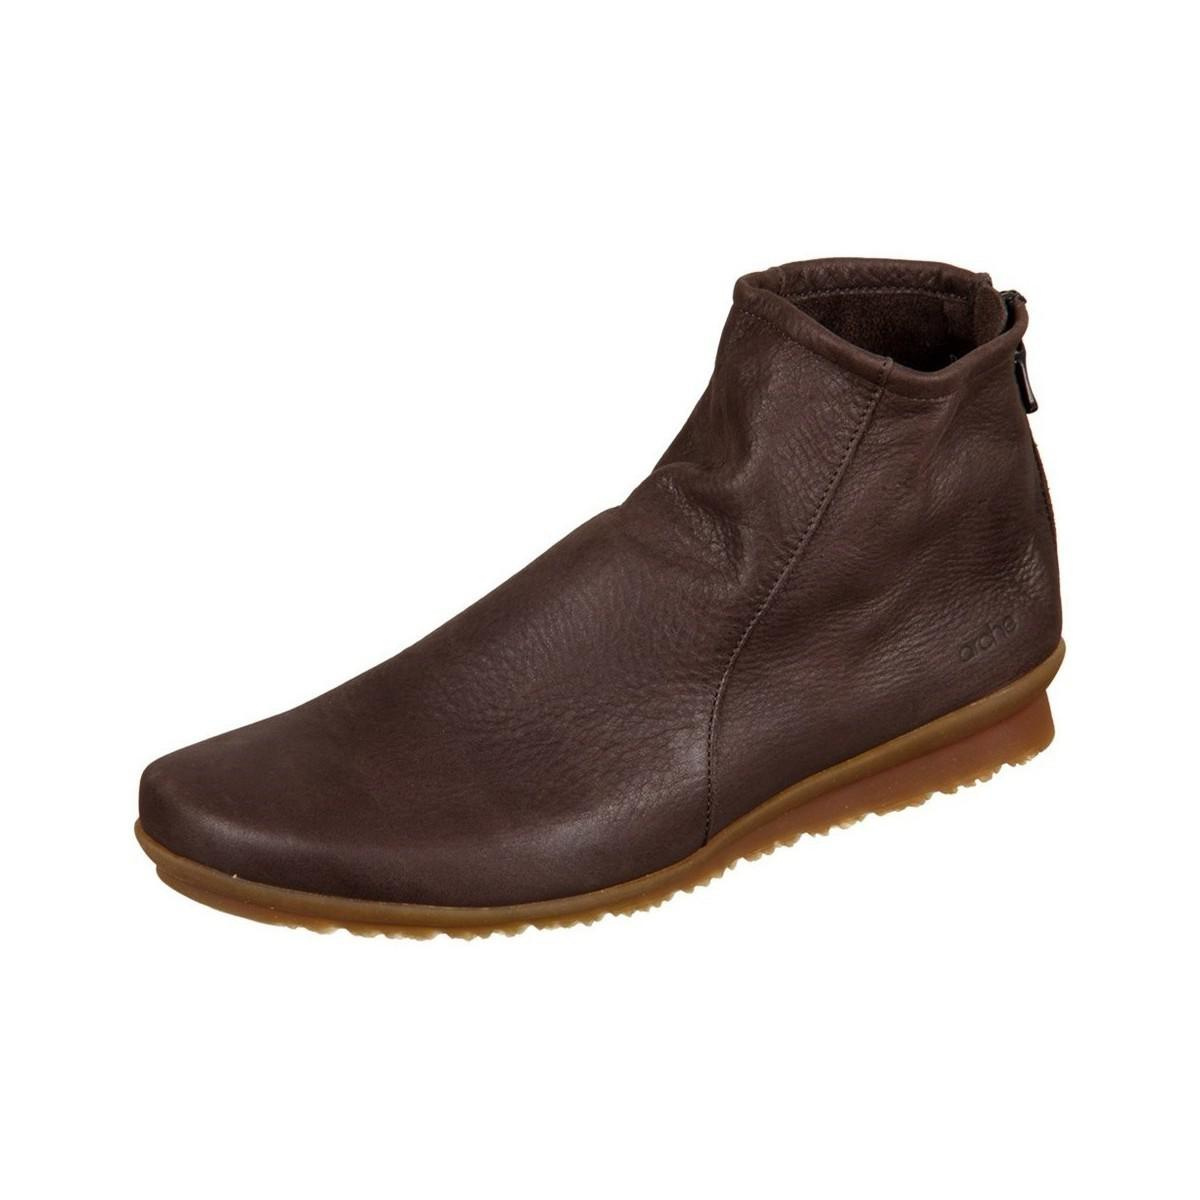 Arche Baryky Baryky TR Truffe Nubuck women's Mid Boots in Cheap Sale View TFgzrZqjo